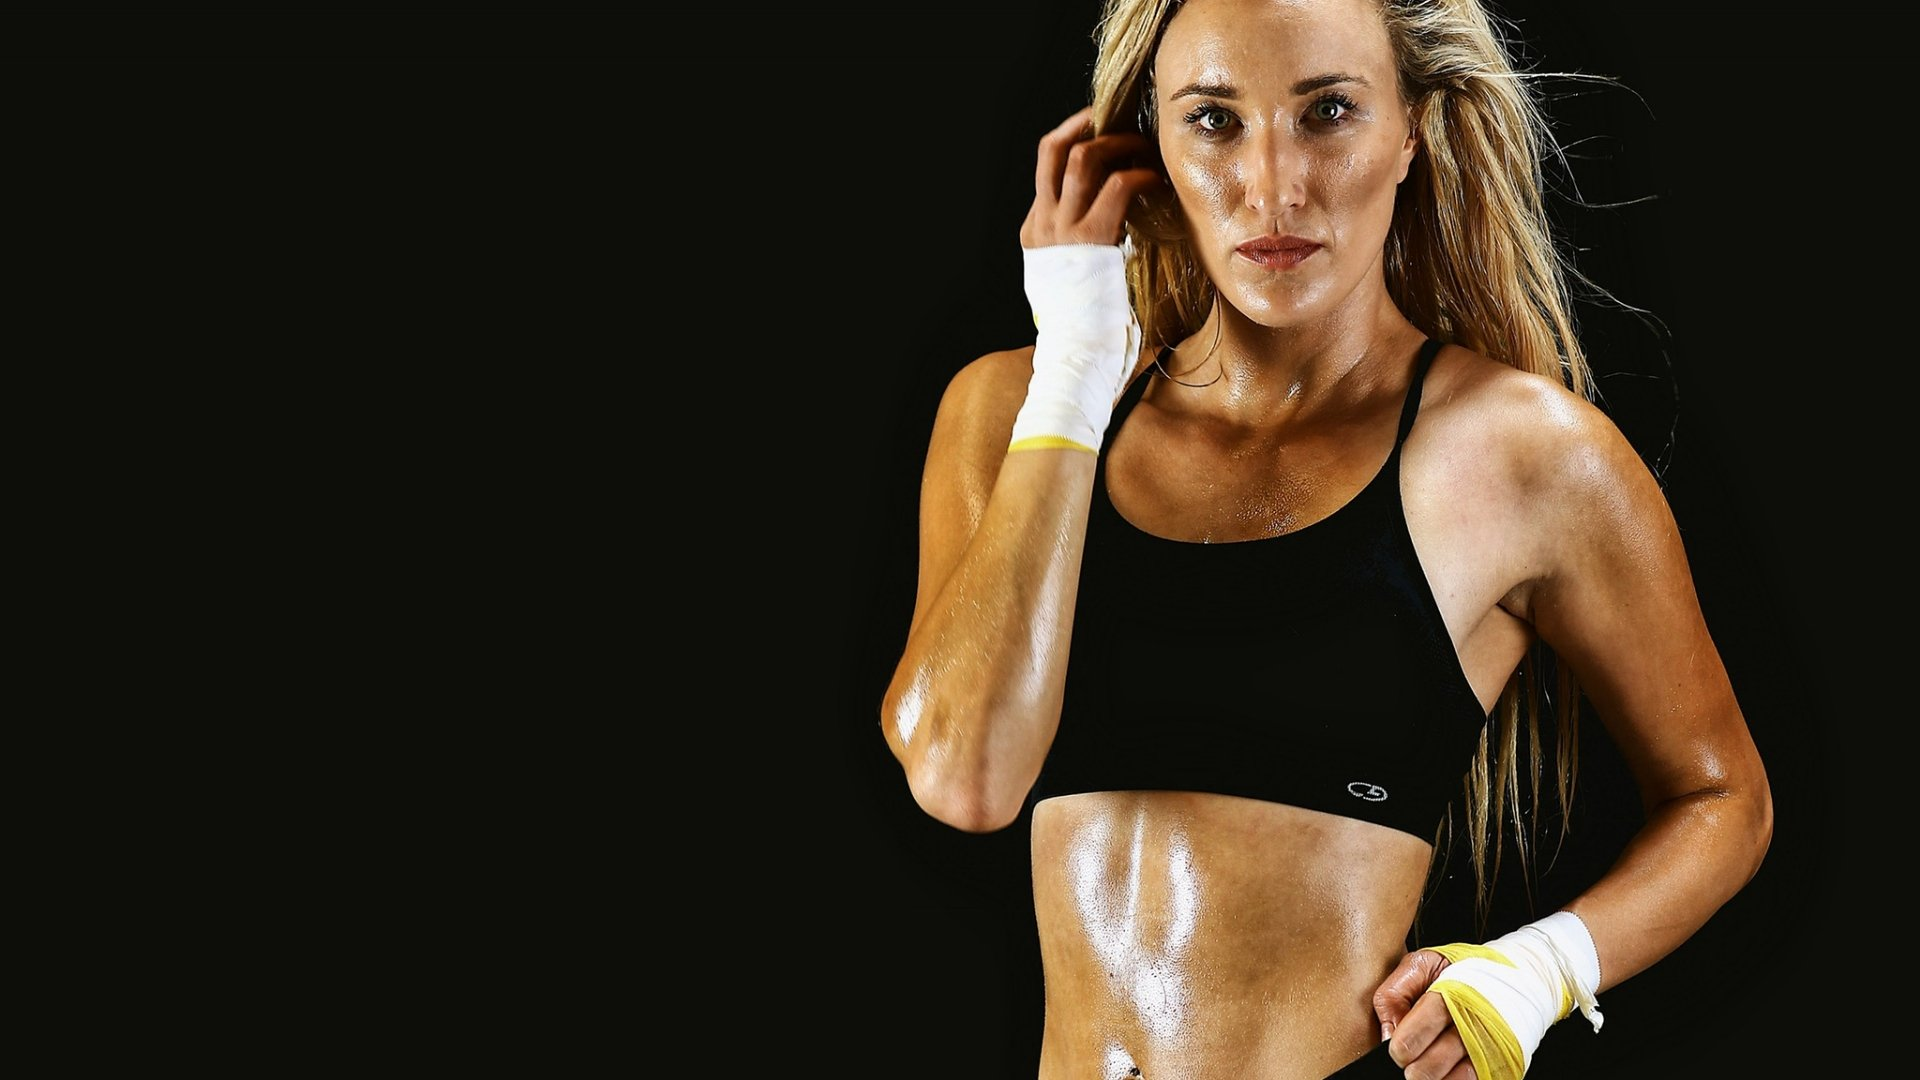 20 Minute Cardio Workouts